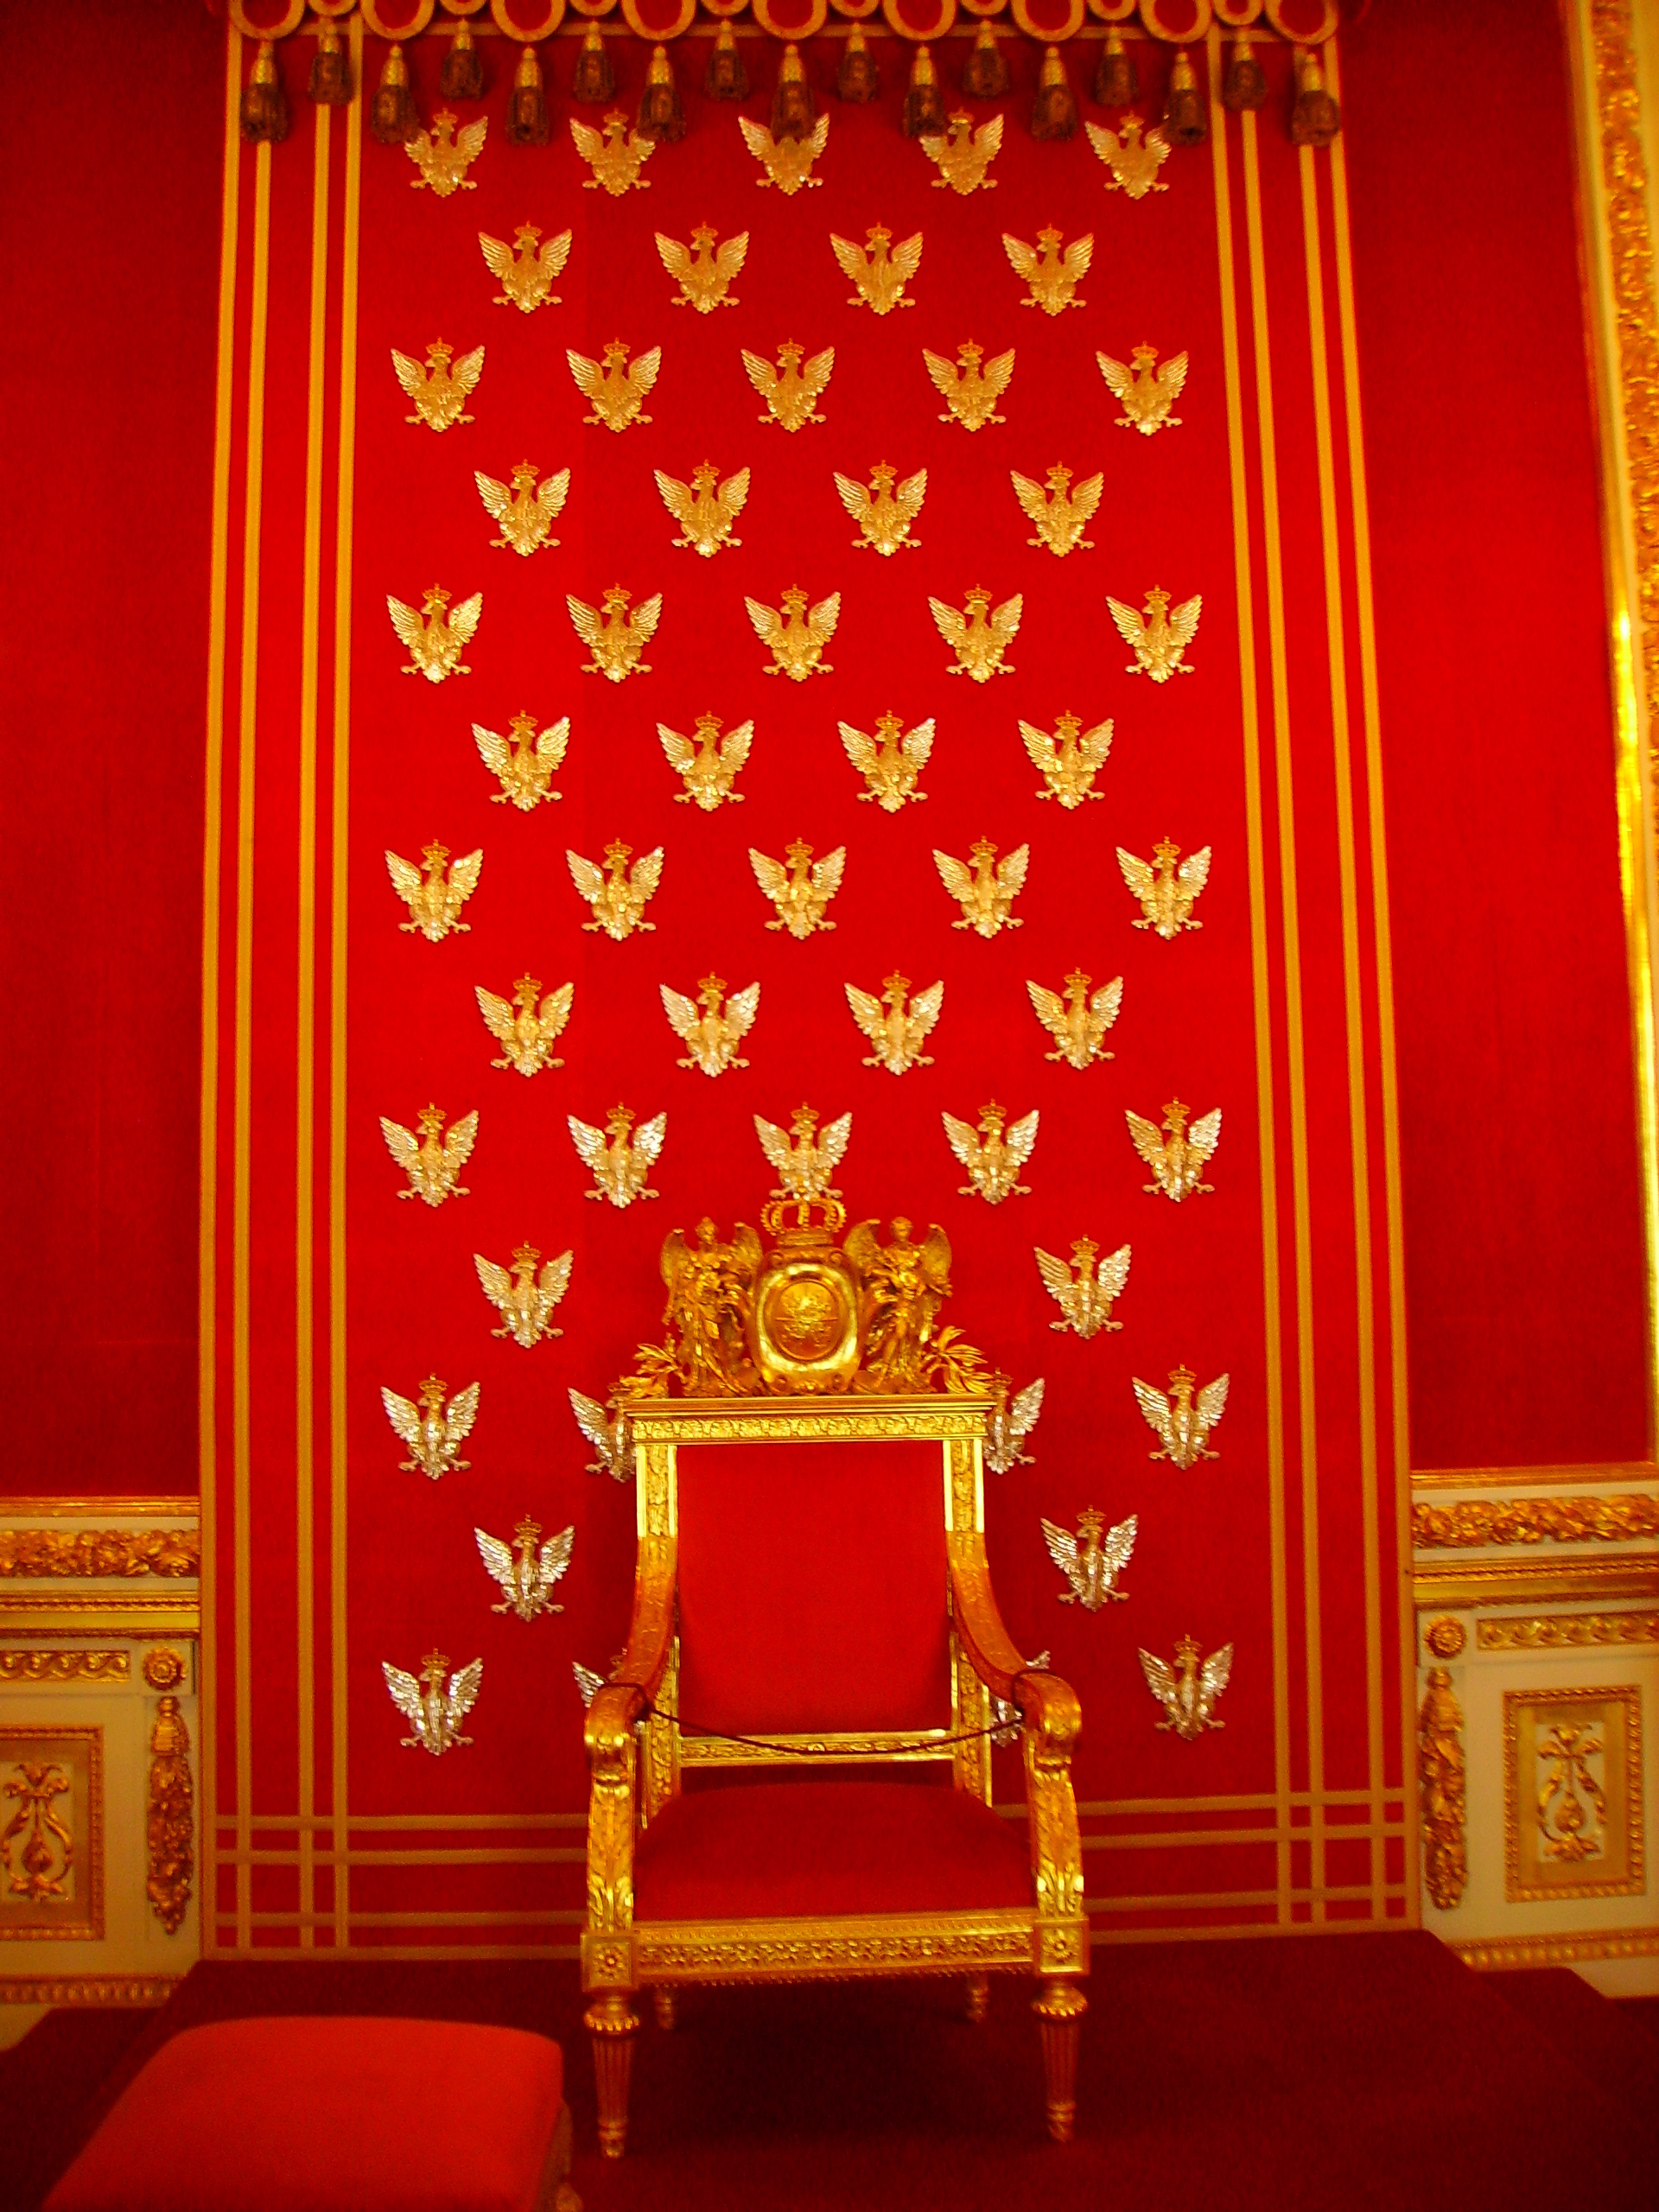 Chair Red Room